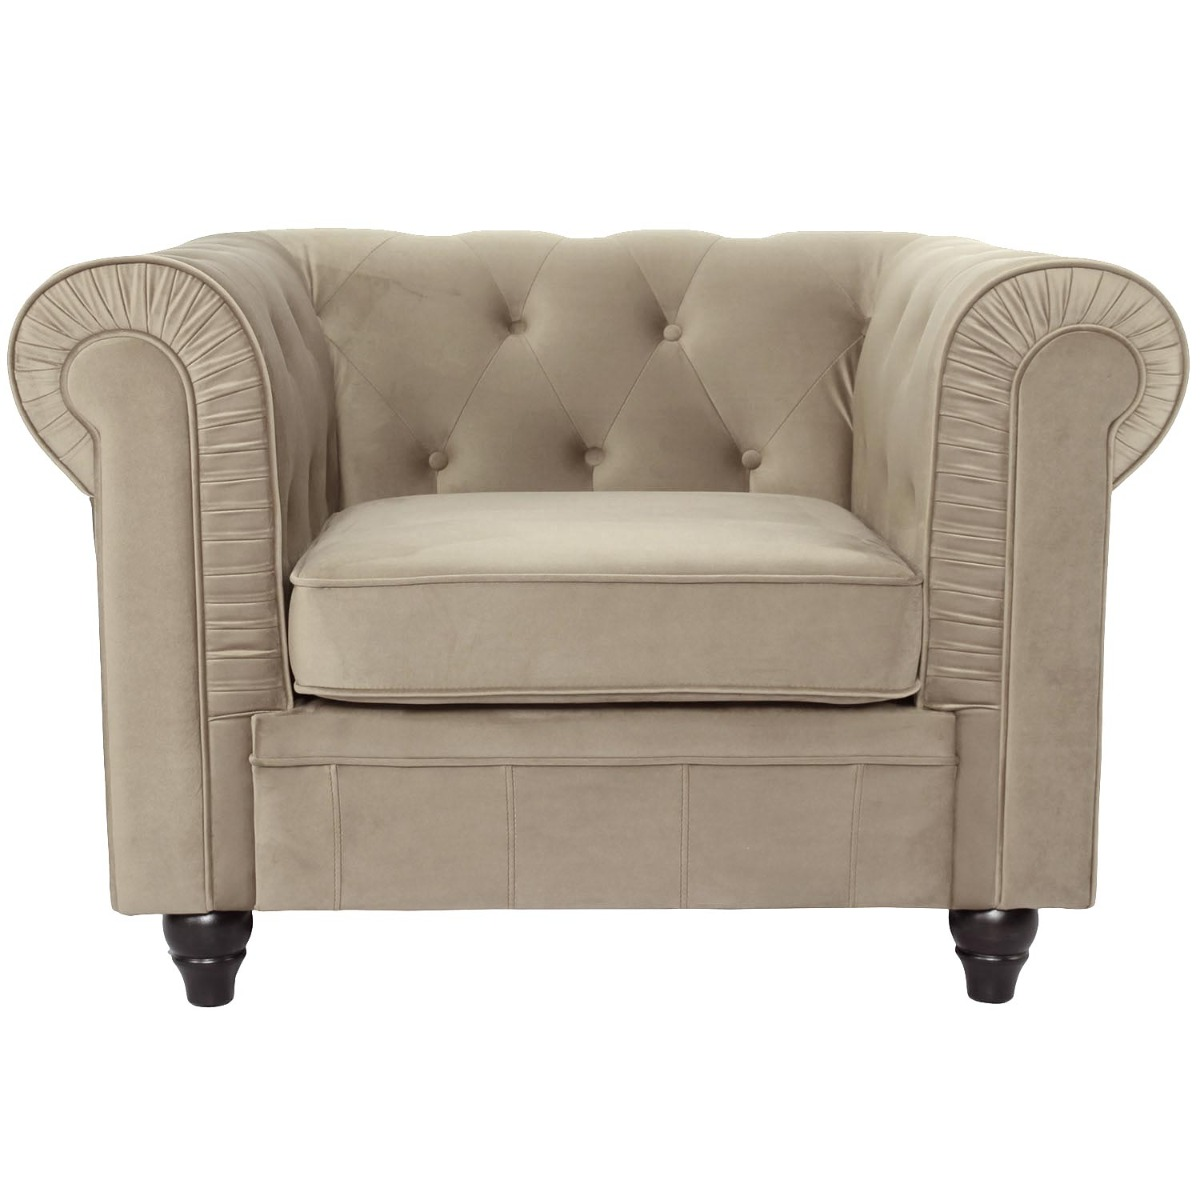 Grand fauteuil Chesterfield velours Taupe New